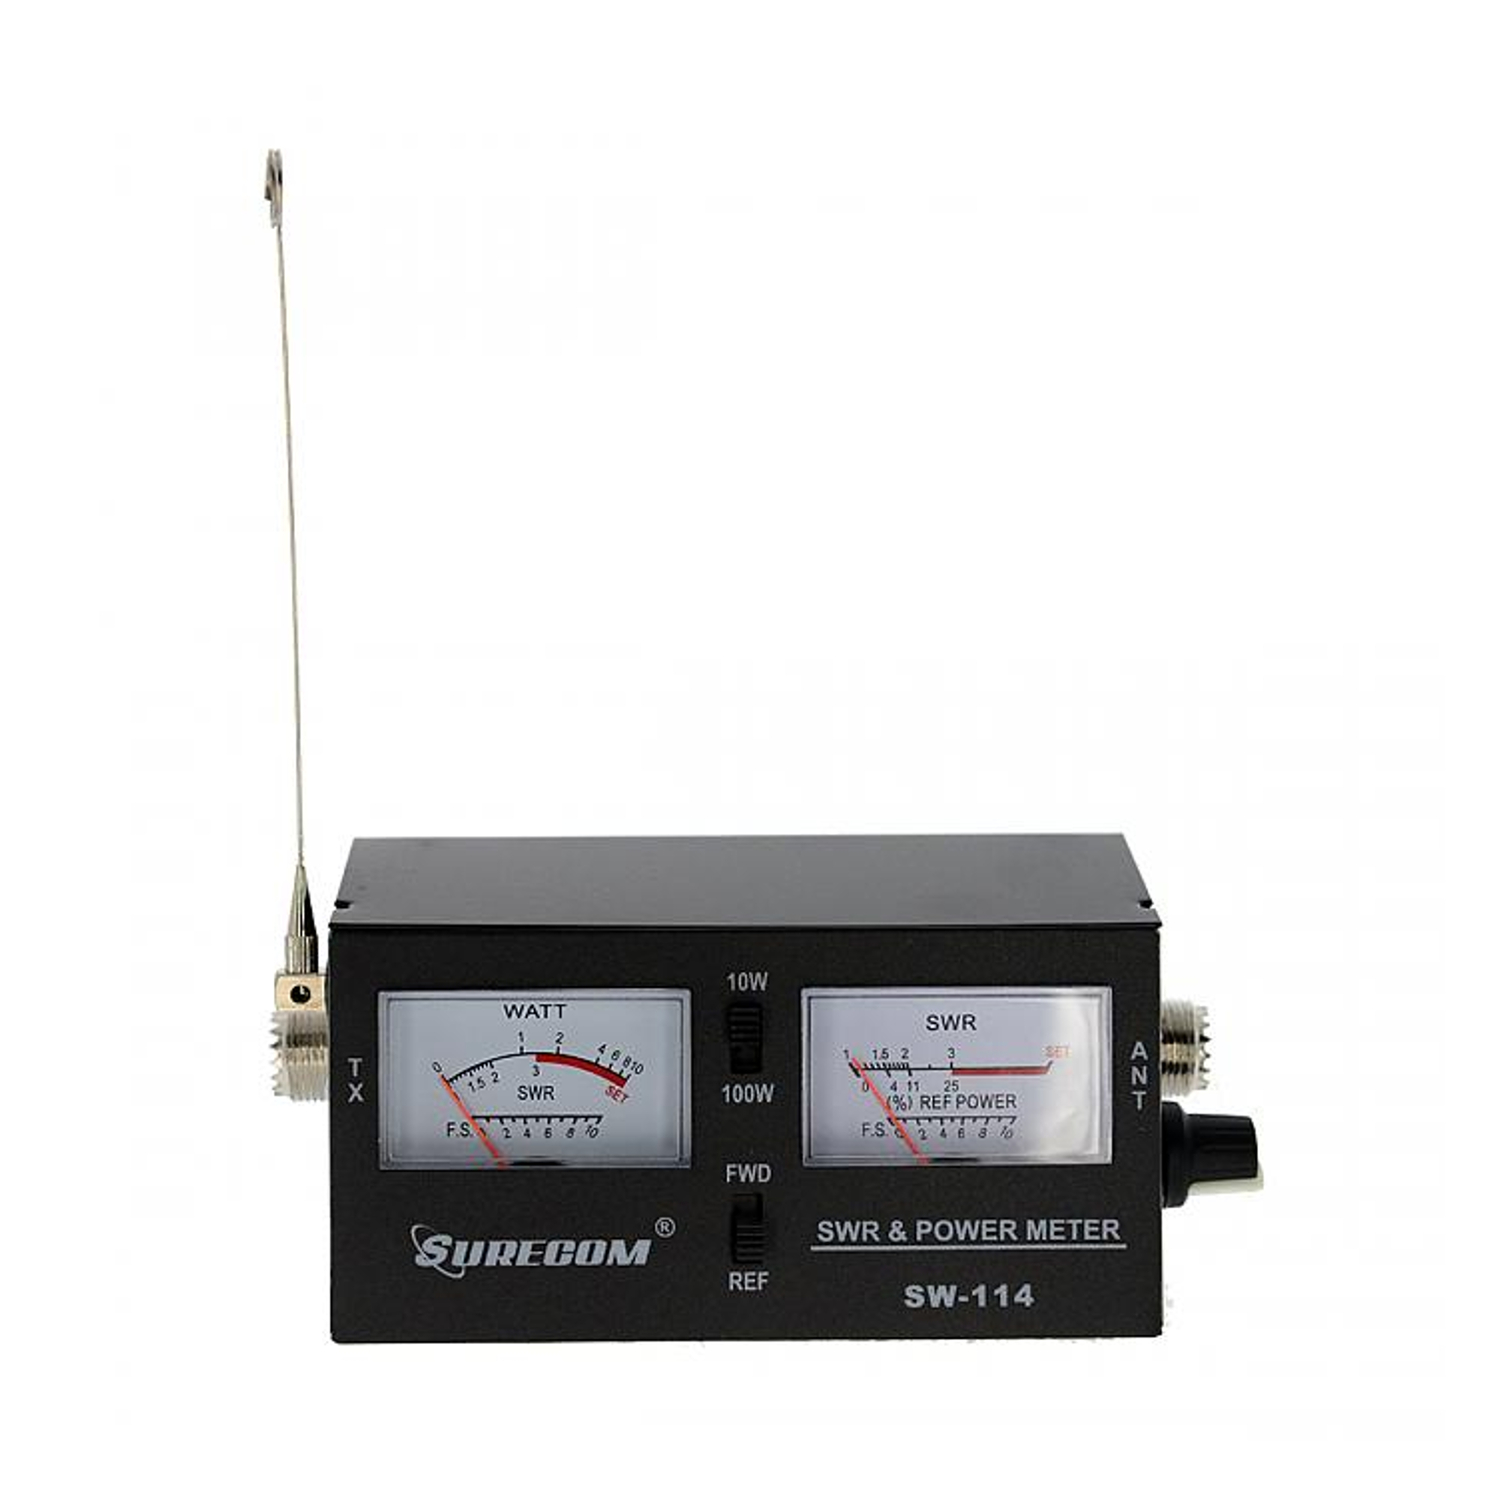 Surecom SW-114 SWR/RF/Field Strength Test Power Meter for Relative Power 3 Function Analog with Field Strength Antenna